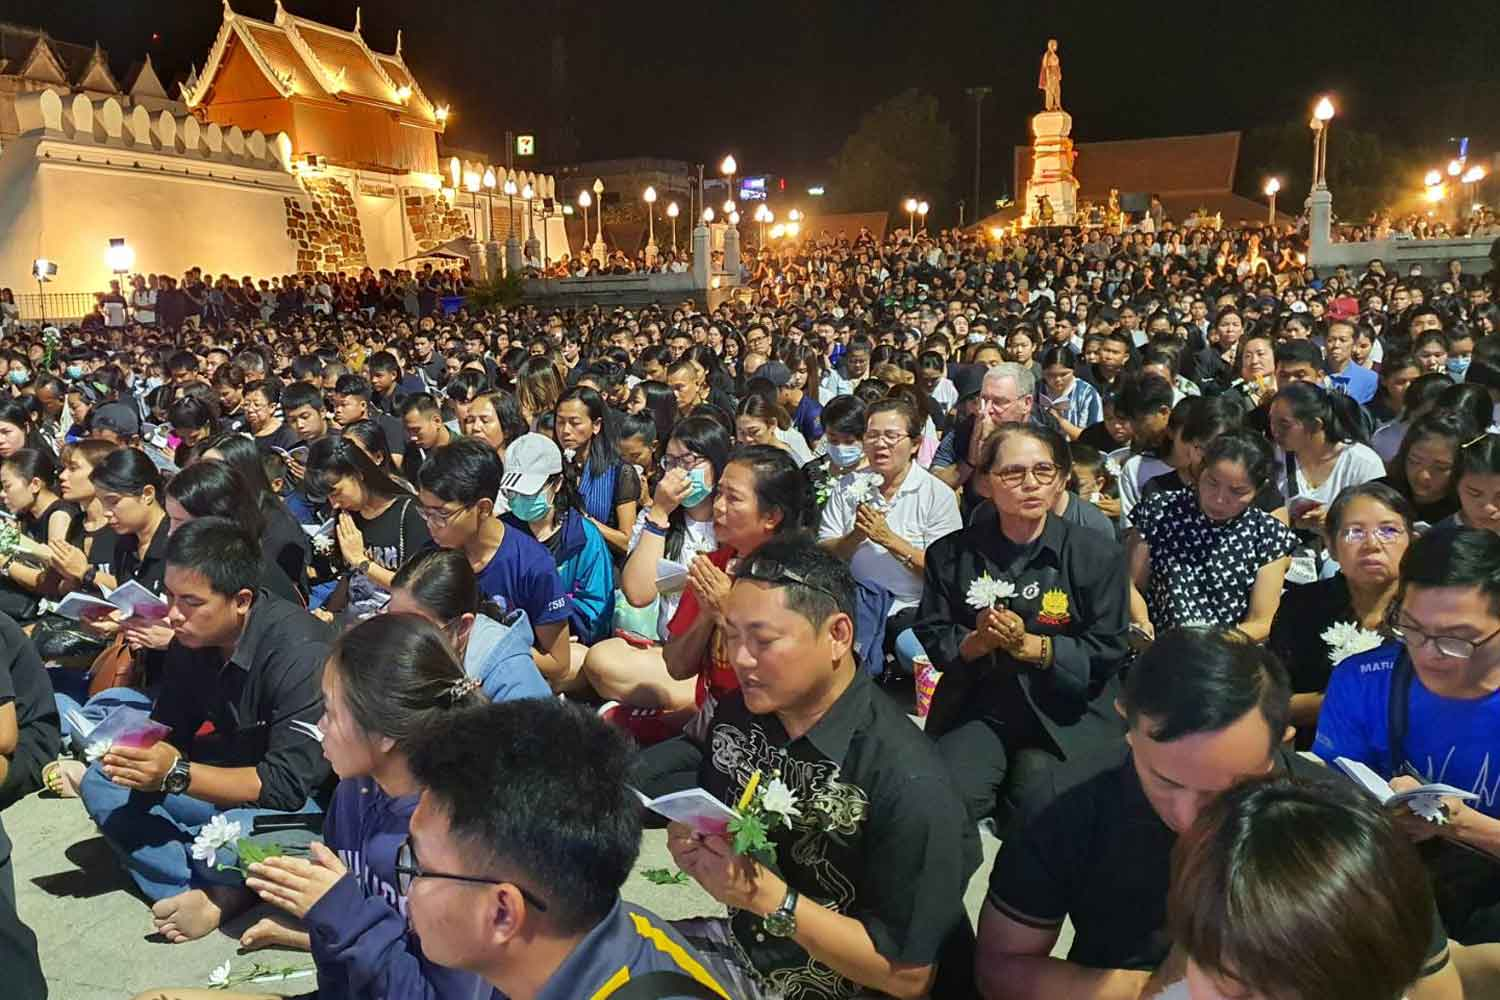 Thousands of local people lit candles and pray for people killed in the shooting rampage in Muang district of Nakhon Ratchasima province on Sunday night. (Photo by Prasit Tangprasert)